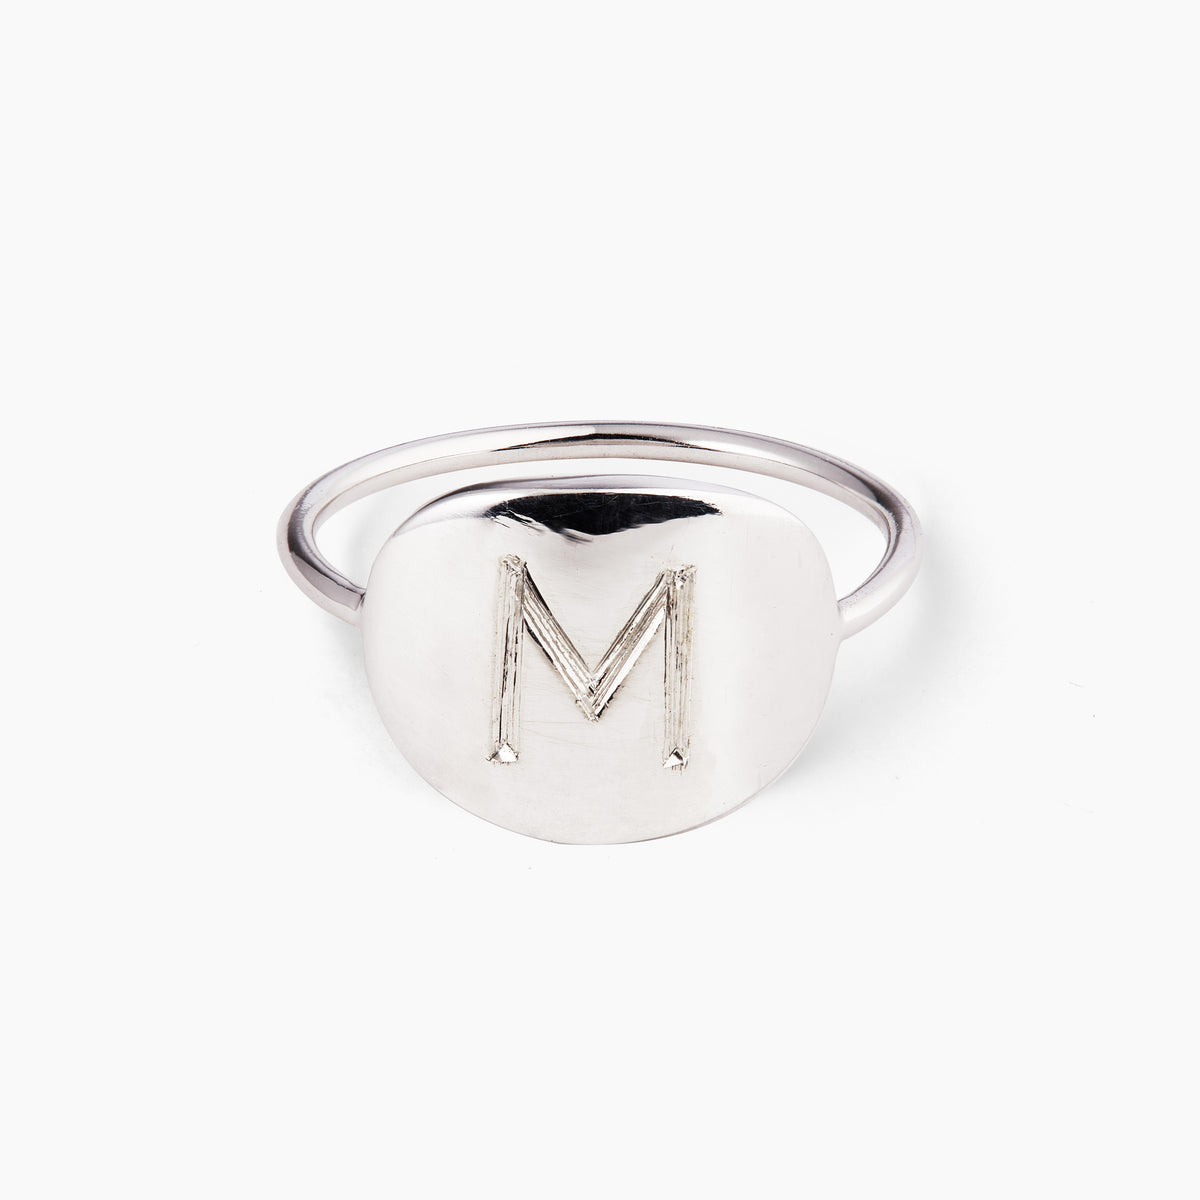 Sterling Silver Ring. Complementary Hand Engraving.